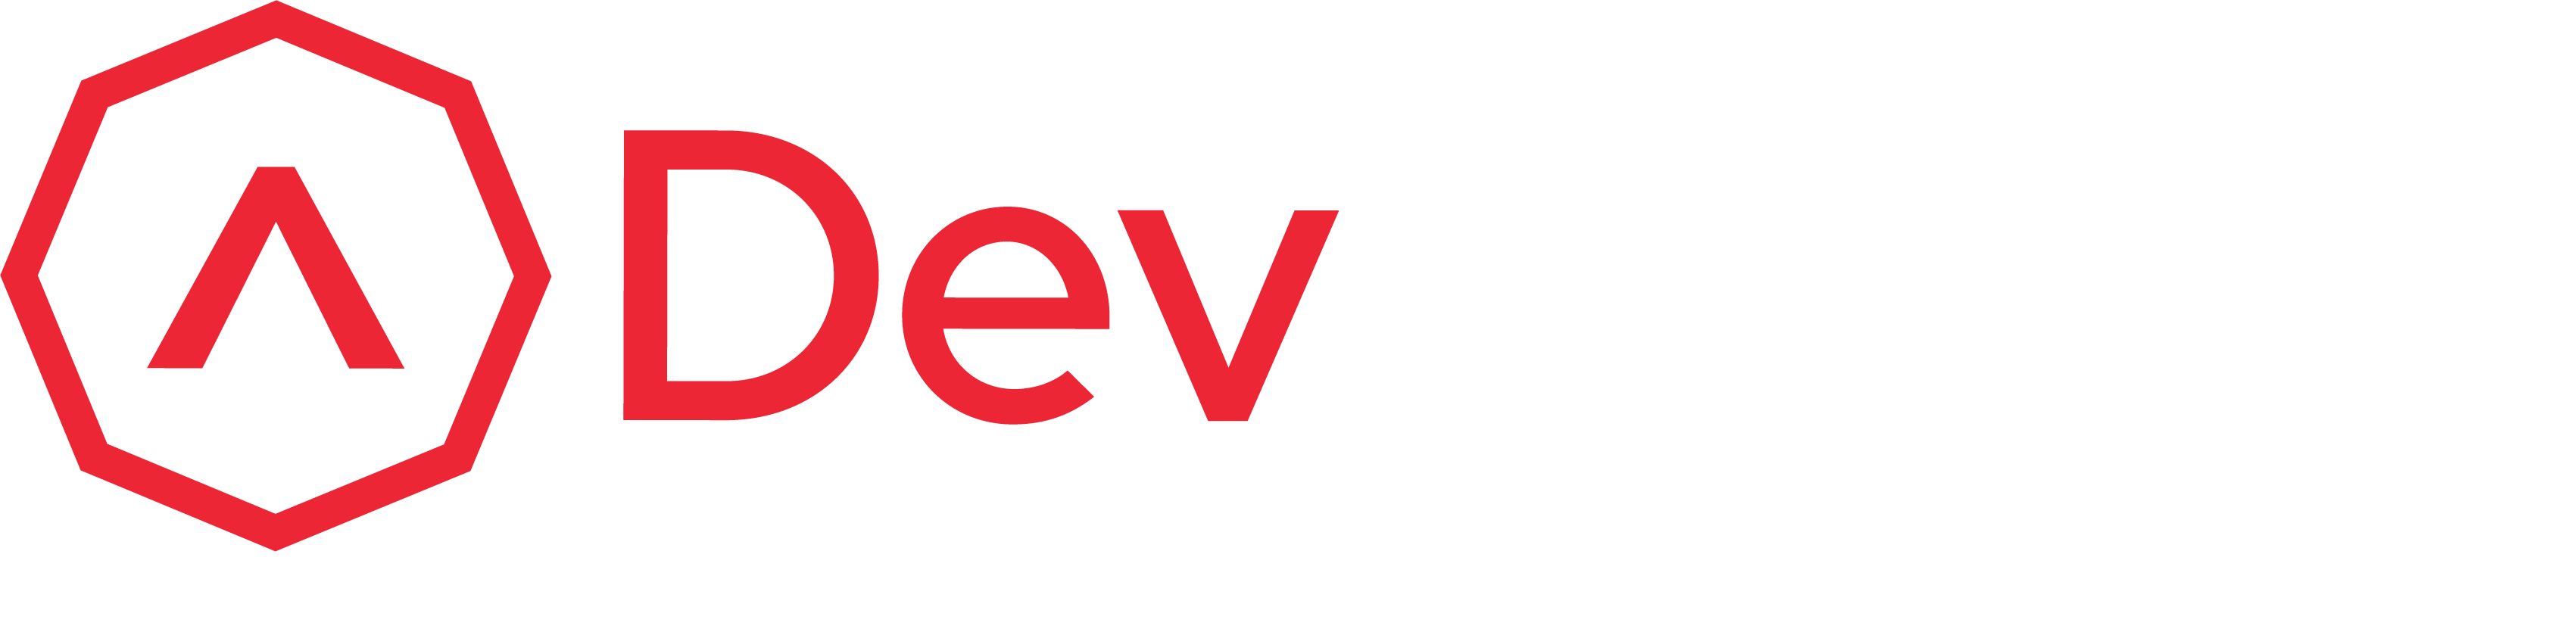 DevNation Day logo